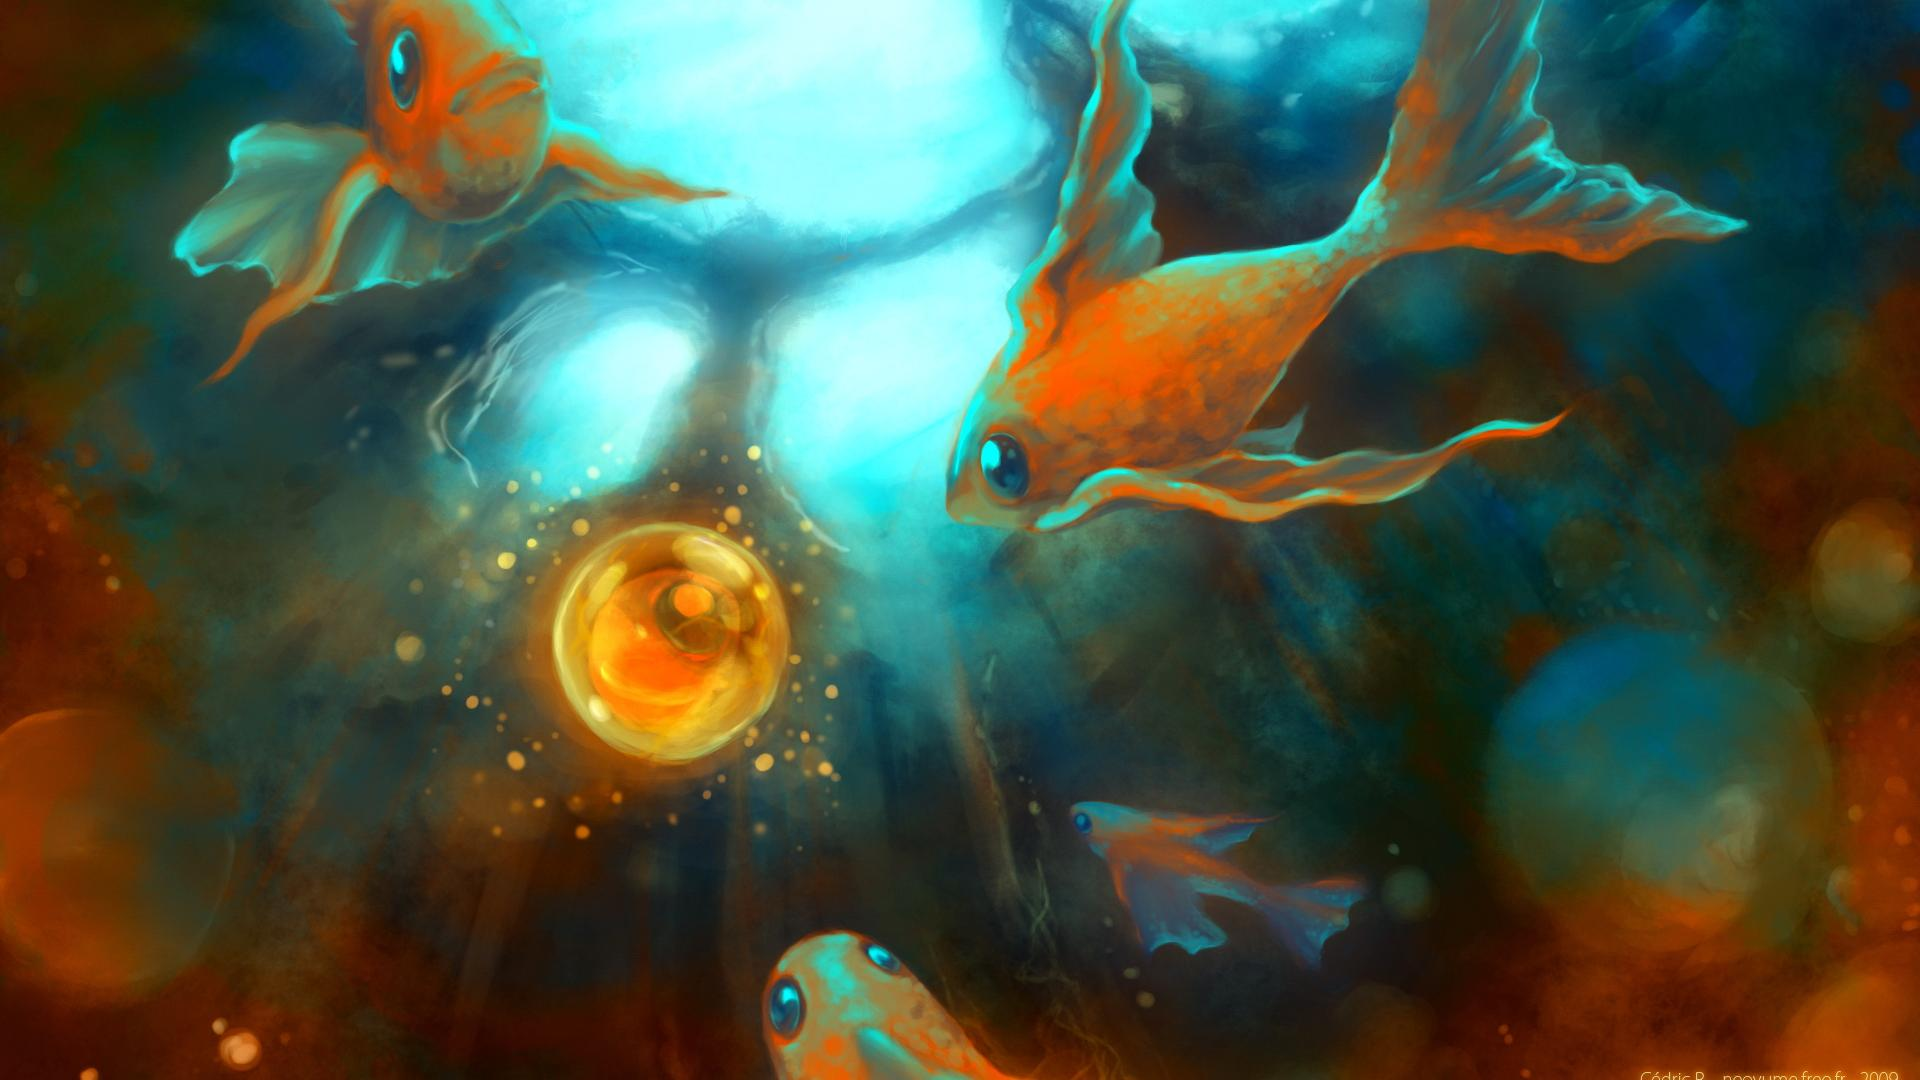 Goldfish Background Download Widescreen and HD background Wallpaper 1920x1080